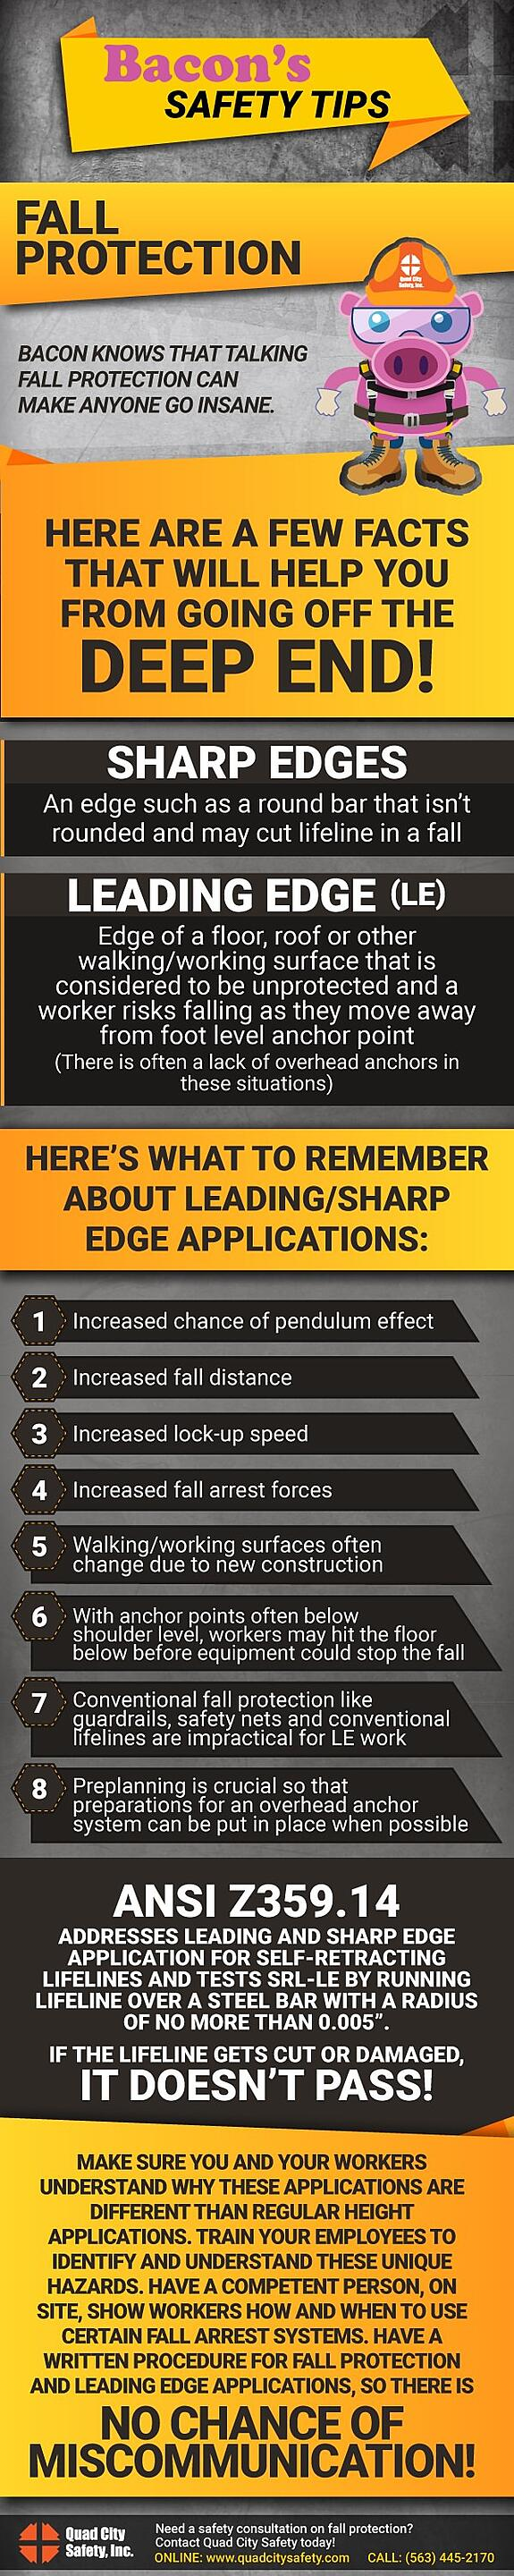 Bacon's Safety Tips Fall protection.